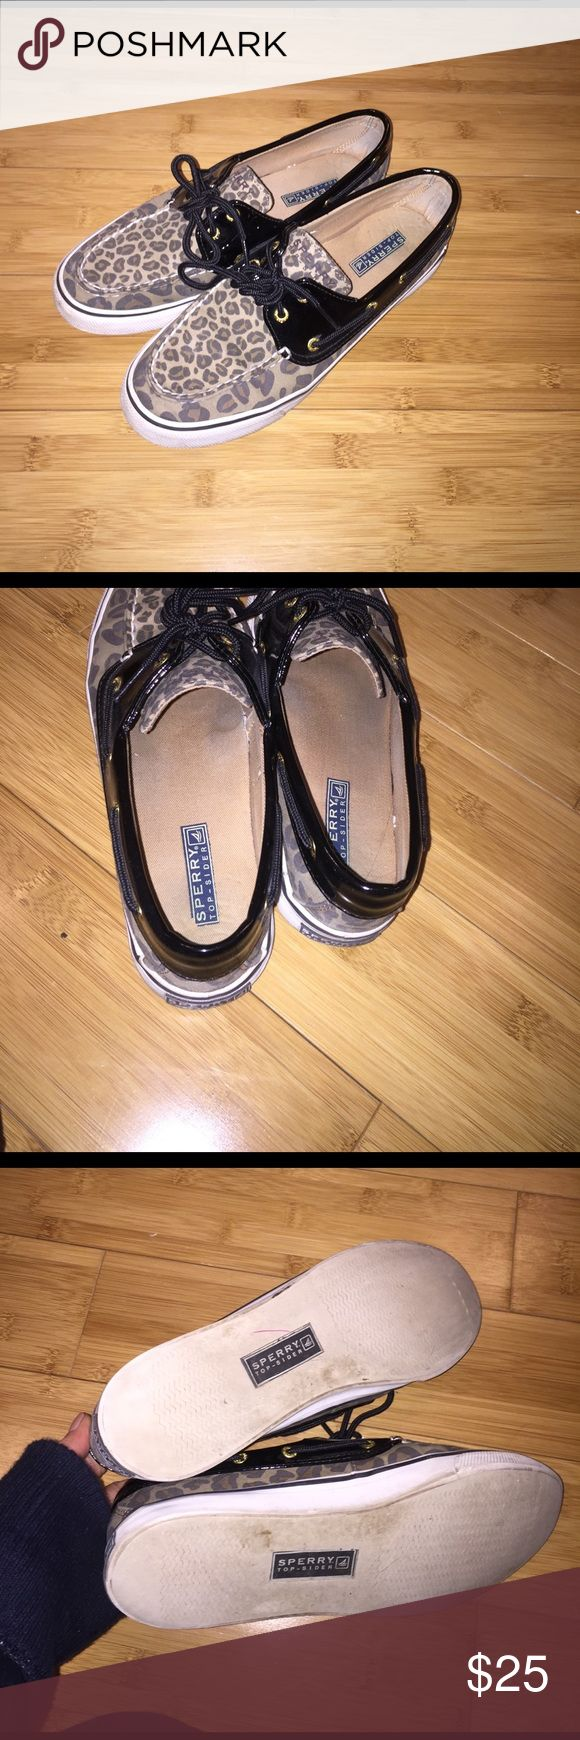 Leopard sperrys Decent shape size 8 womens Sperry Top-Sider Shoes Flats & Loafers